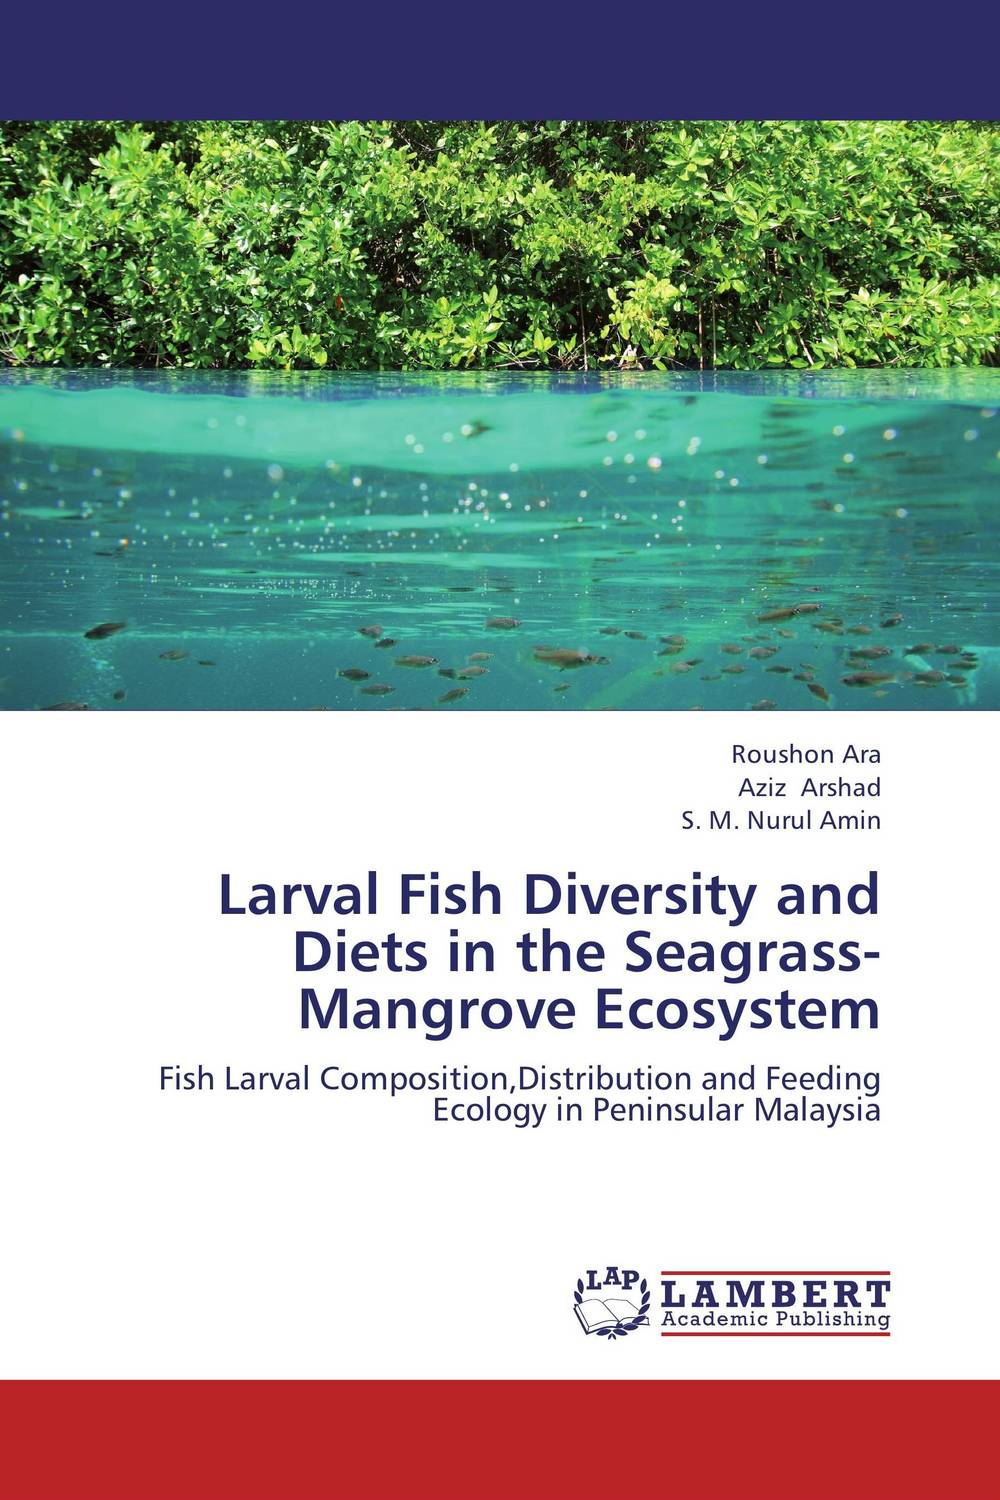 Larval Fish Diversity and Diets in the Seagrass-Mangrove Ecosystem